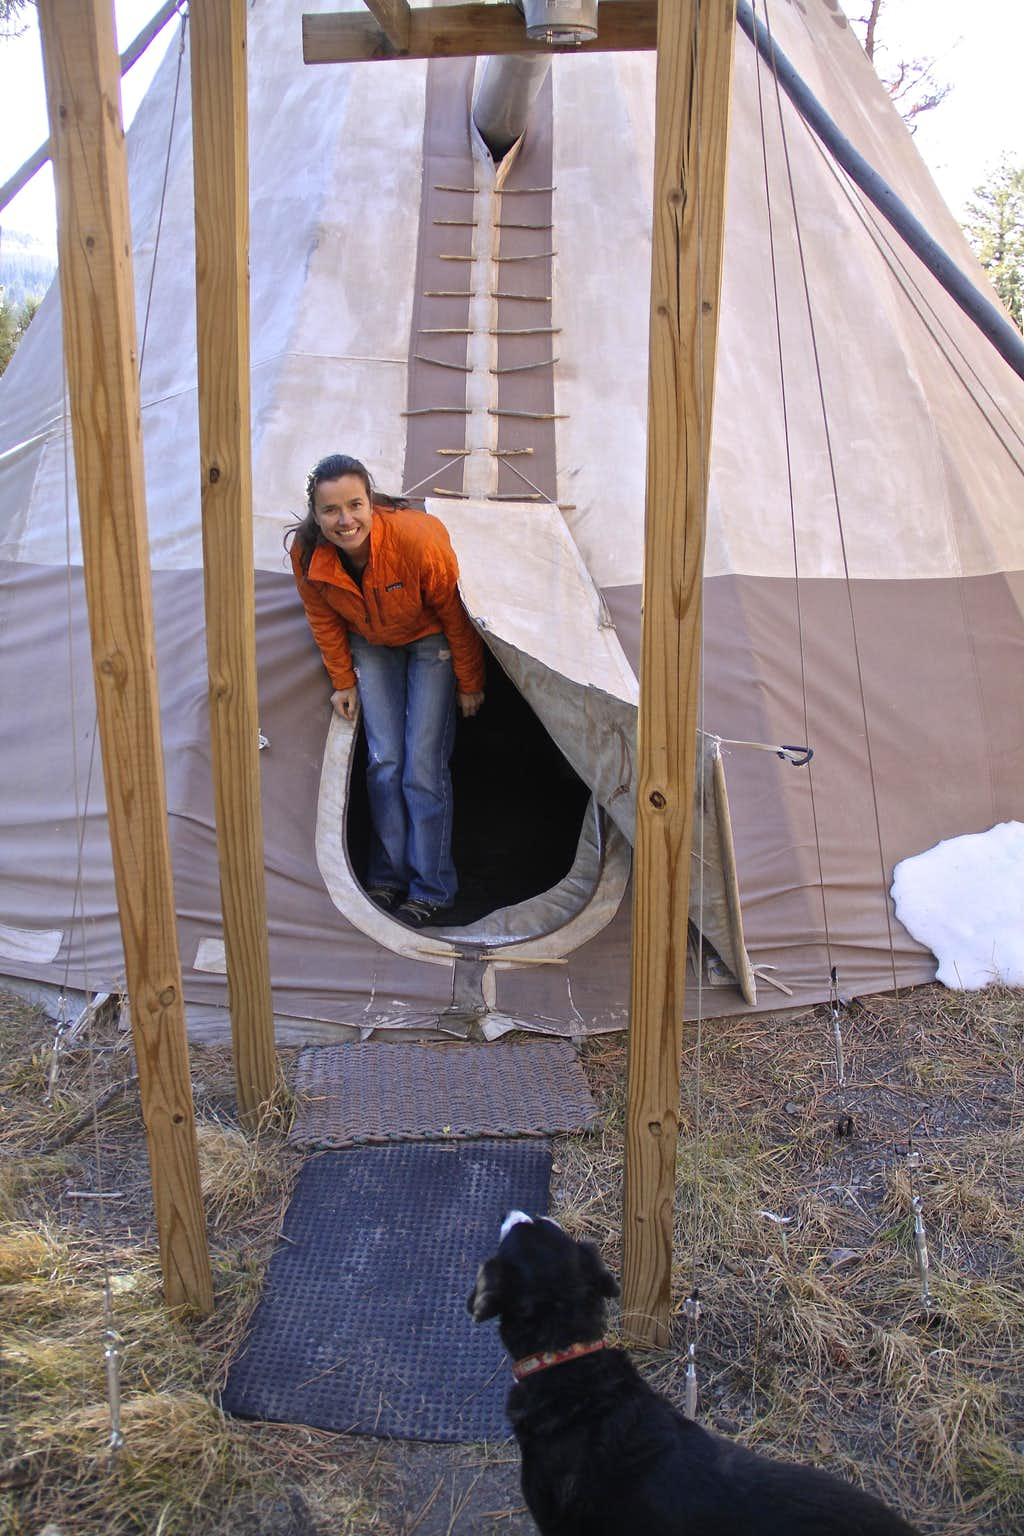 Another visit to tipi